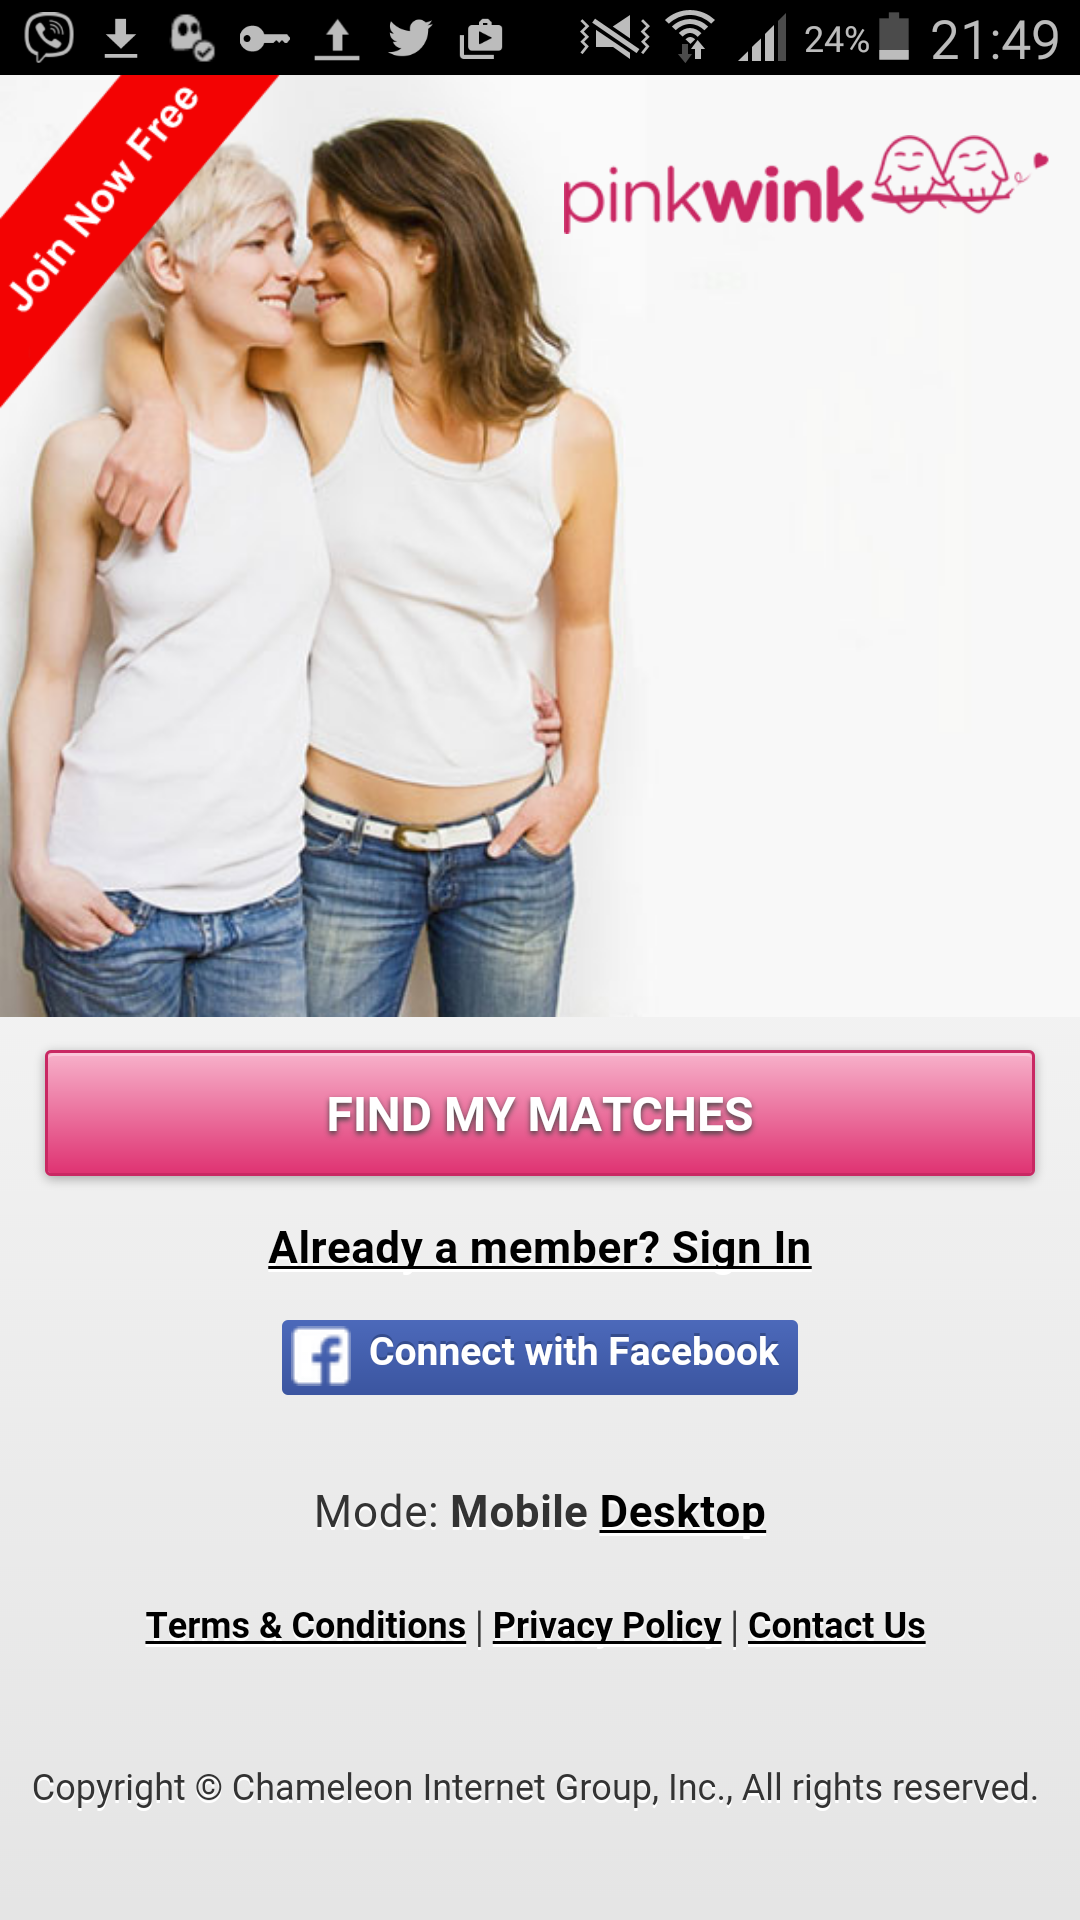 waters lesbian dating site Shemeetshercom-black lesbian dating 62k likes shemeetsher (wwwshemeetshercom) is a dating website for black lesbian women joy increases by.